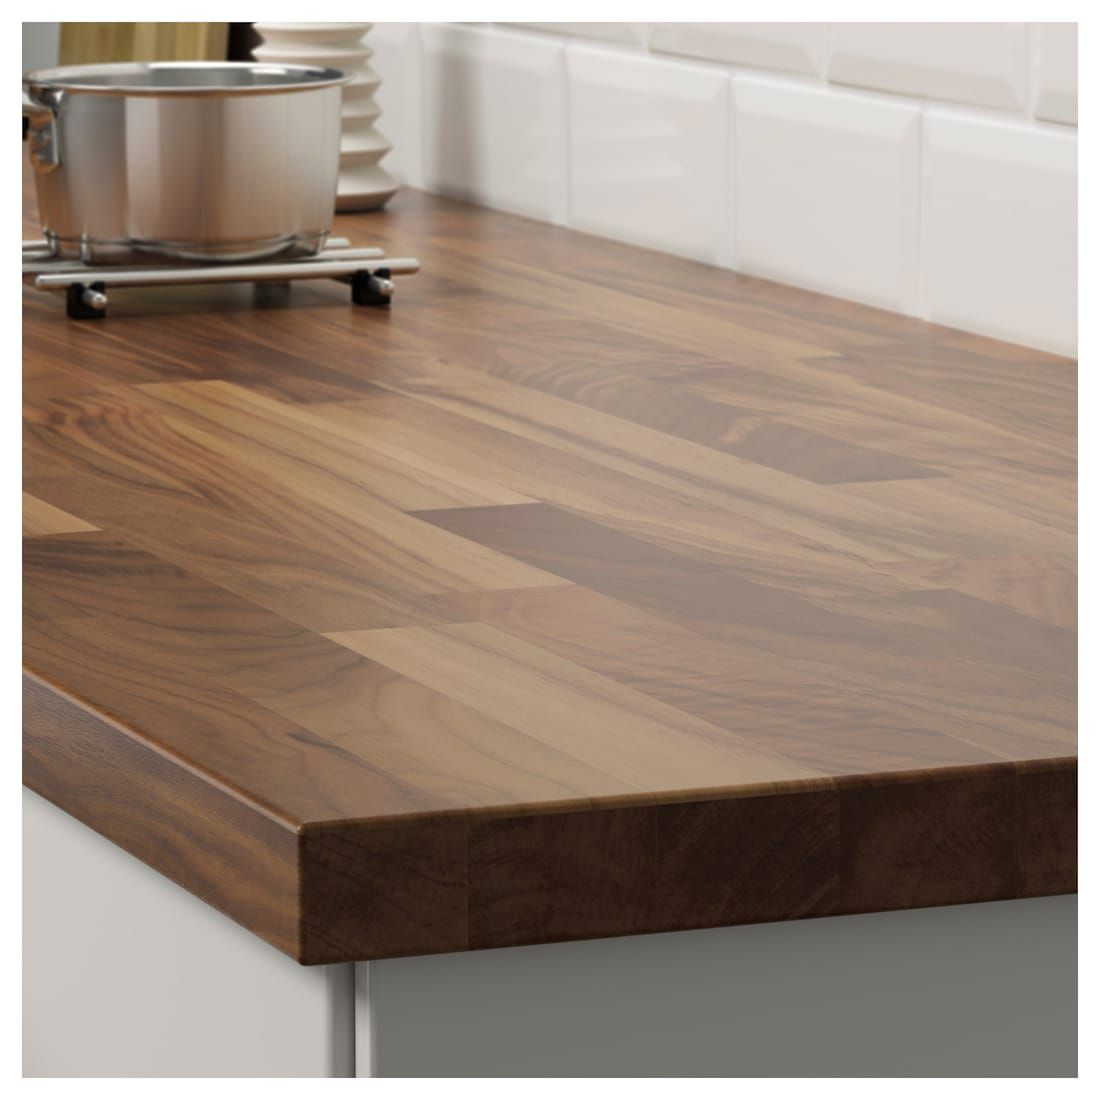 Karlby Countertop Walnut Veneer 98x1 1 2 Karlby Countertop Replacing Kitchen Countertops Butcher Block Countertops